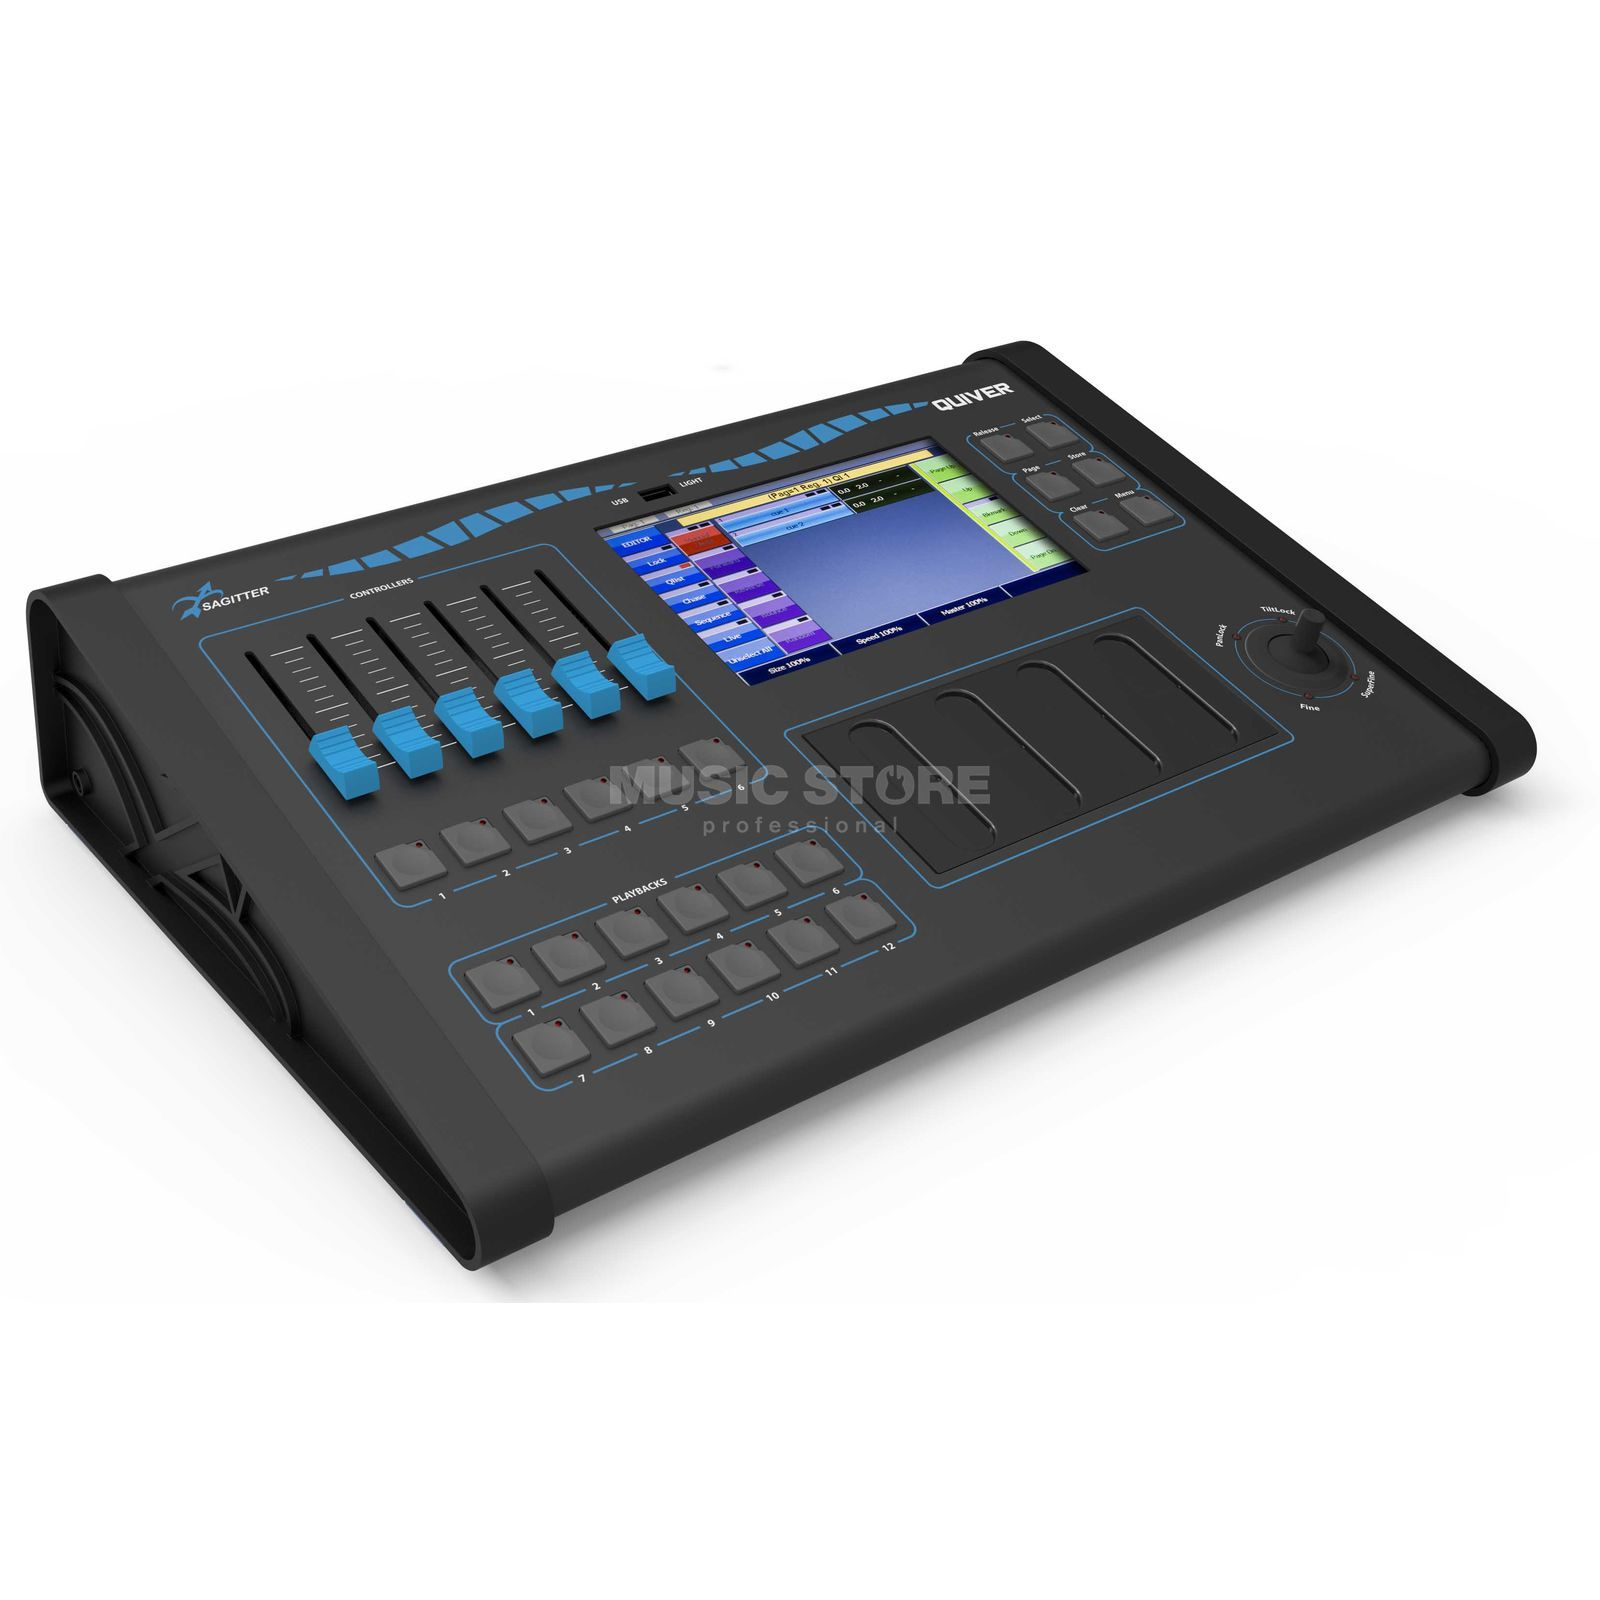 Sagitter Quiver DMX Controller 512 Channels / up to 1536 Image du produit